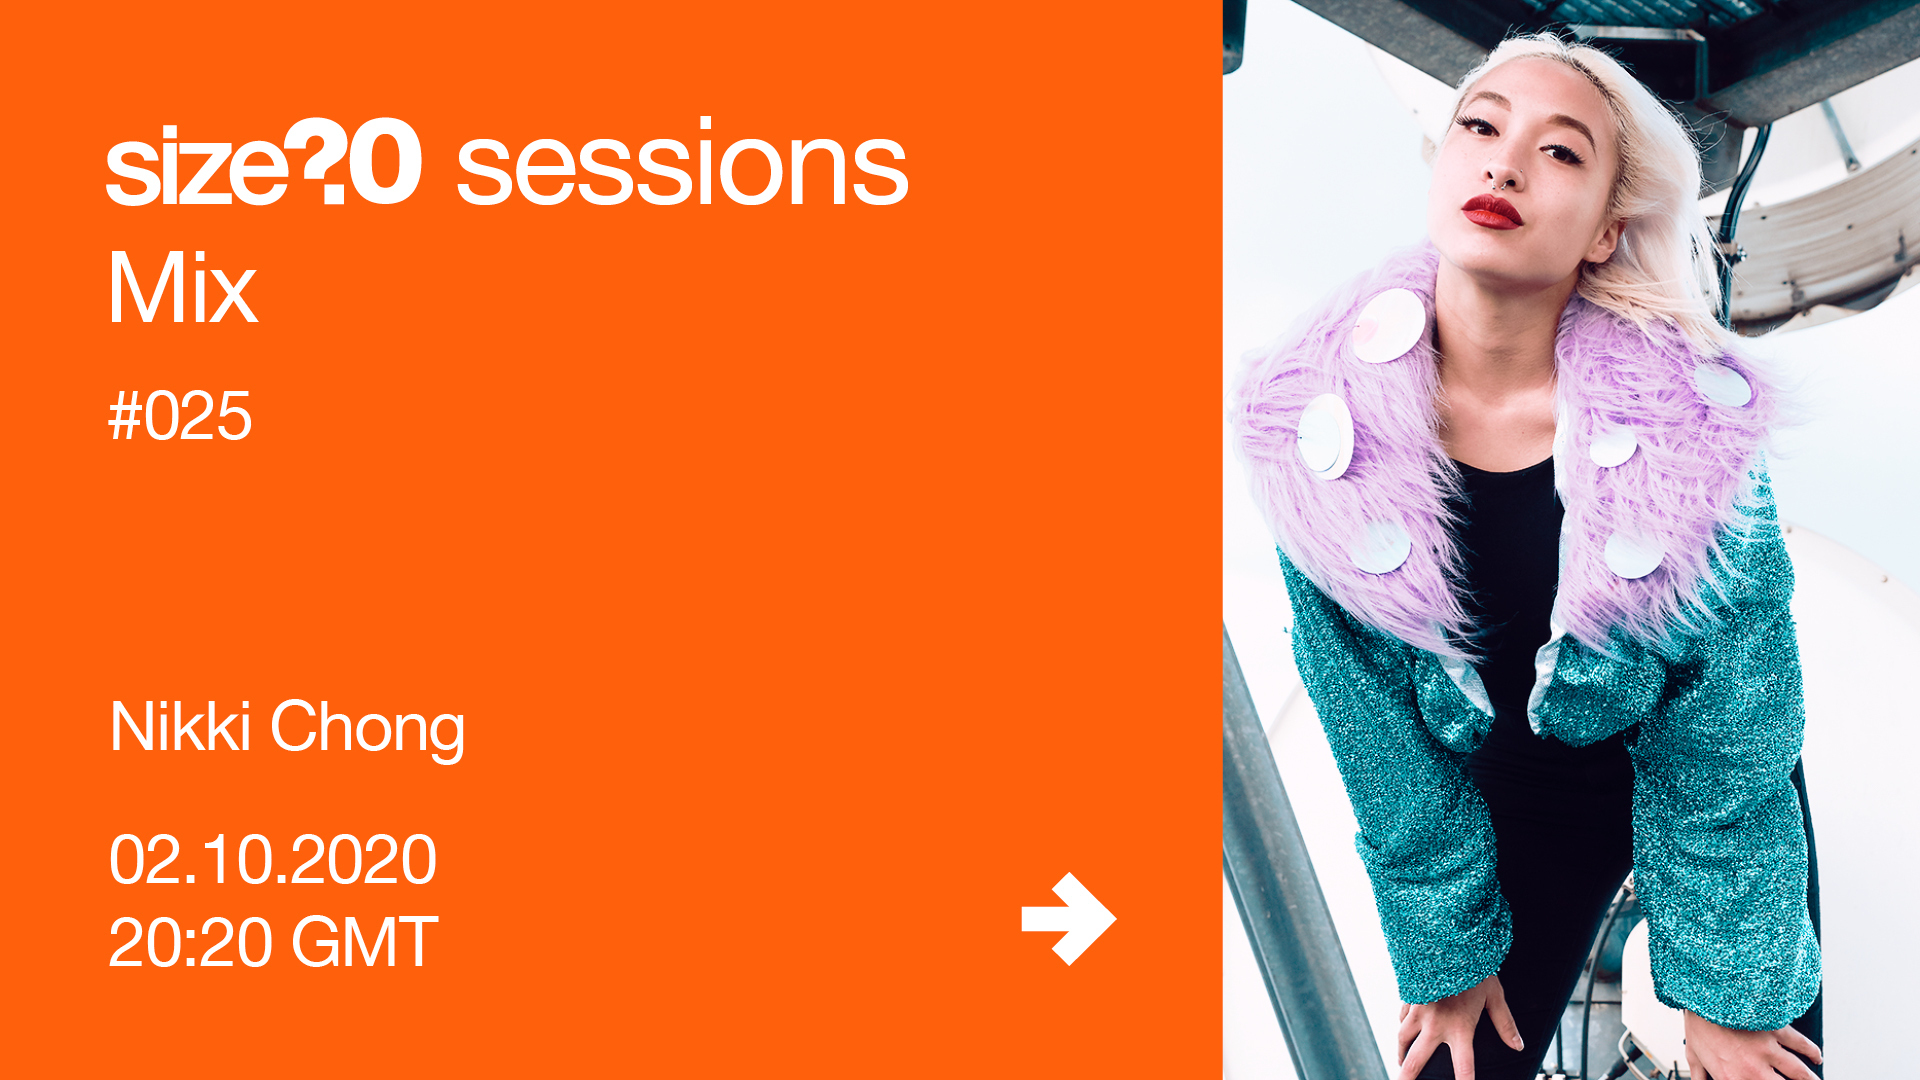 Nikki Chong size? sessions Mix